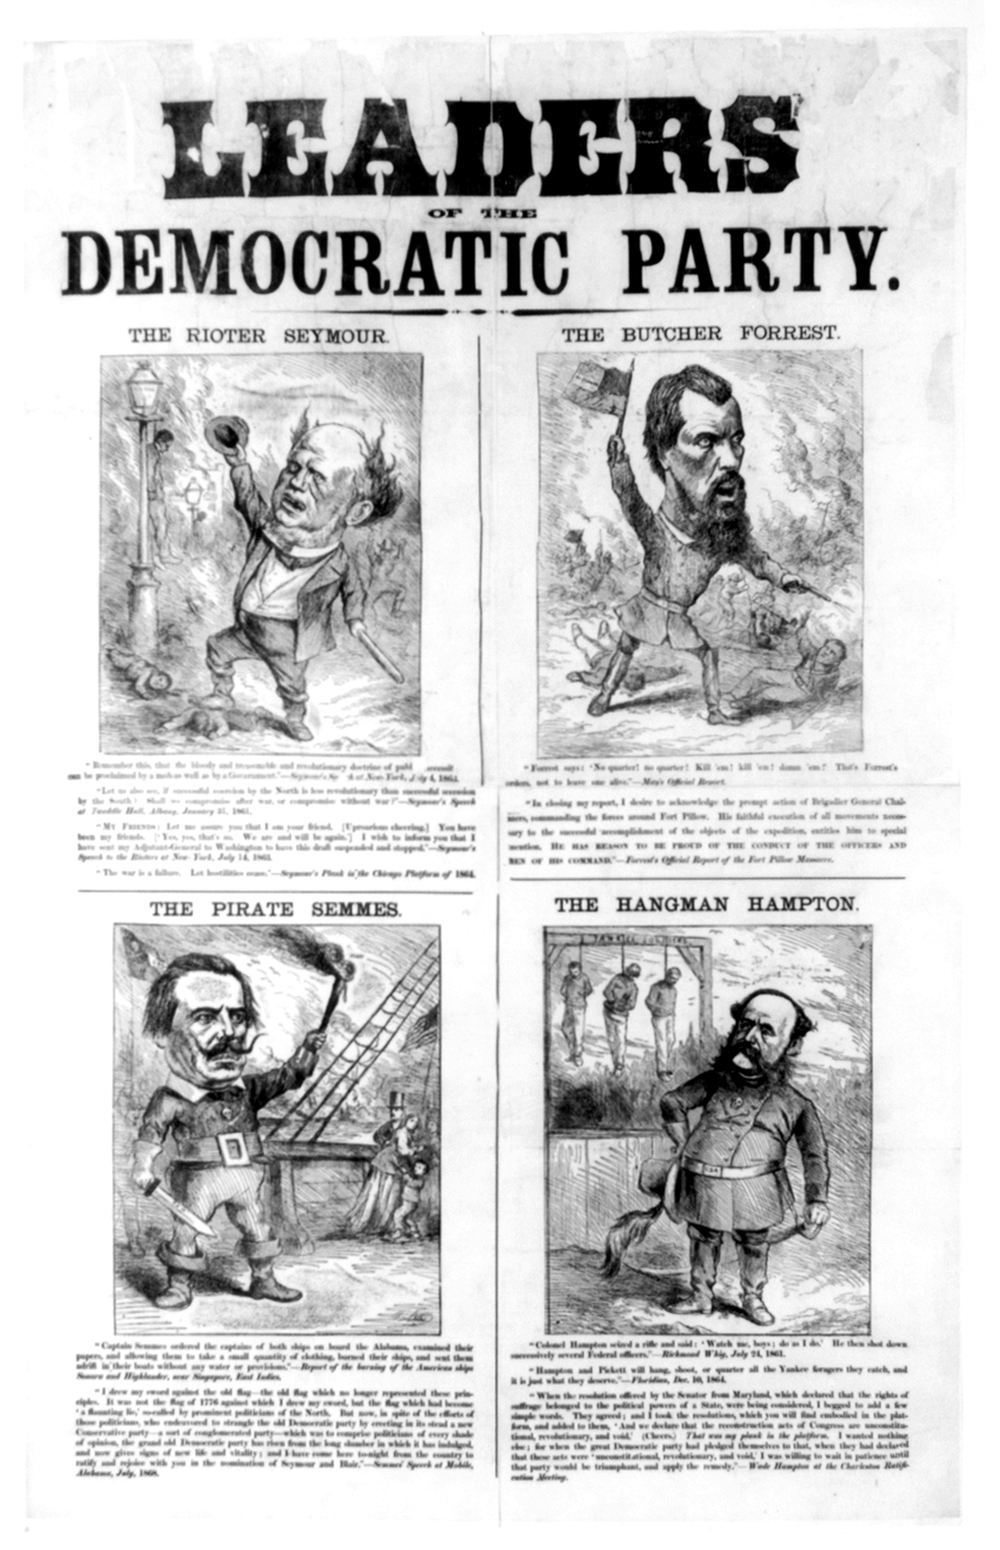 Leaders of the Democratic Party including The Rioter Semour and The Butcher Forrest by Thomas Nast, depicting Horatio Seymour. Published 1868 - PD Source: Library of Congress